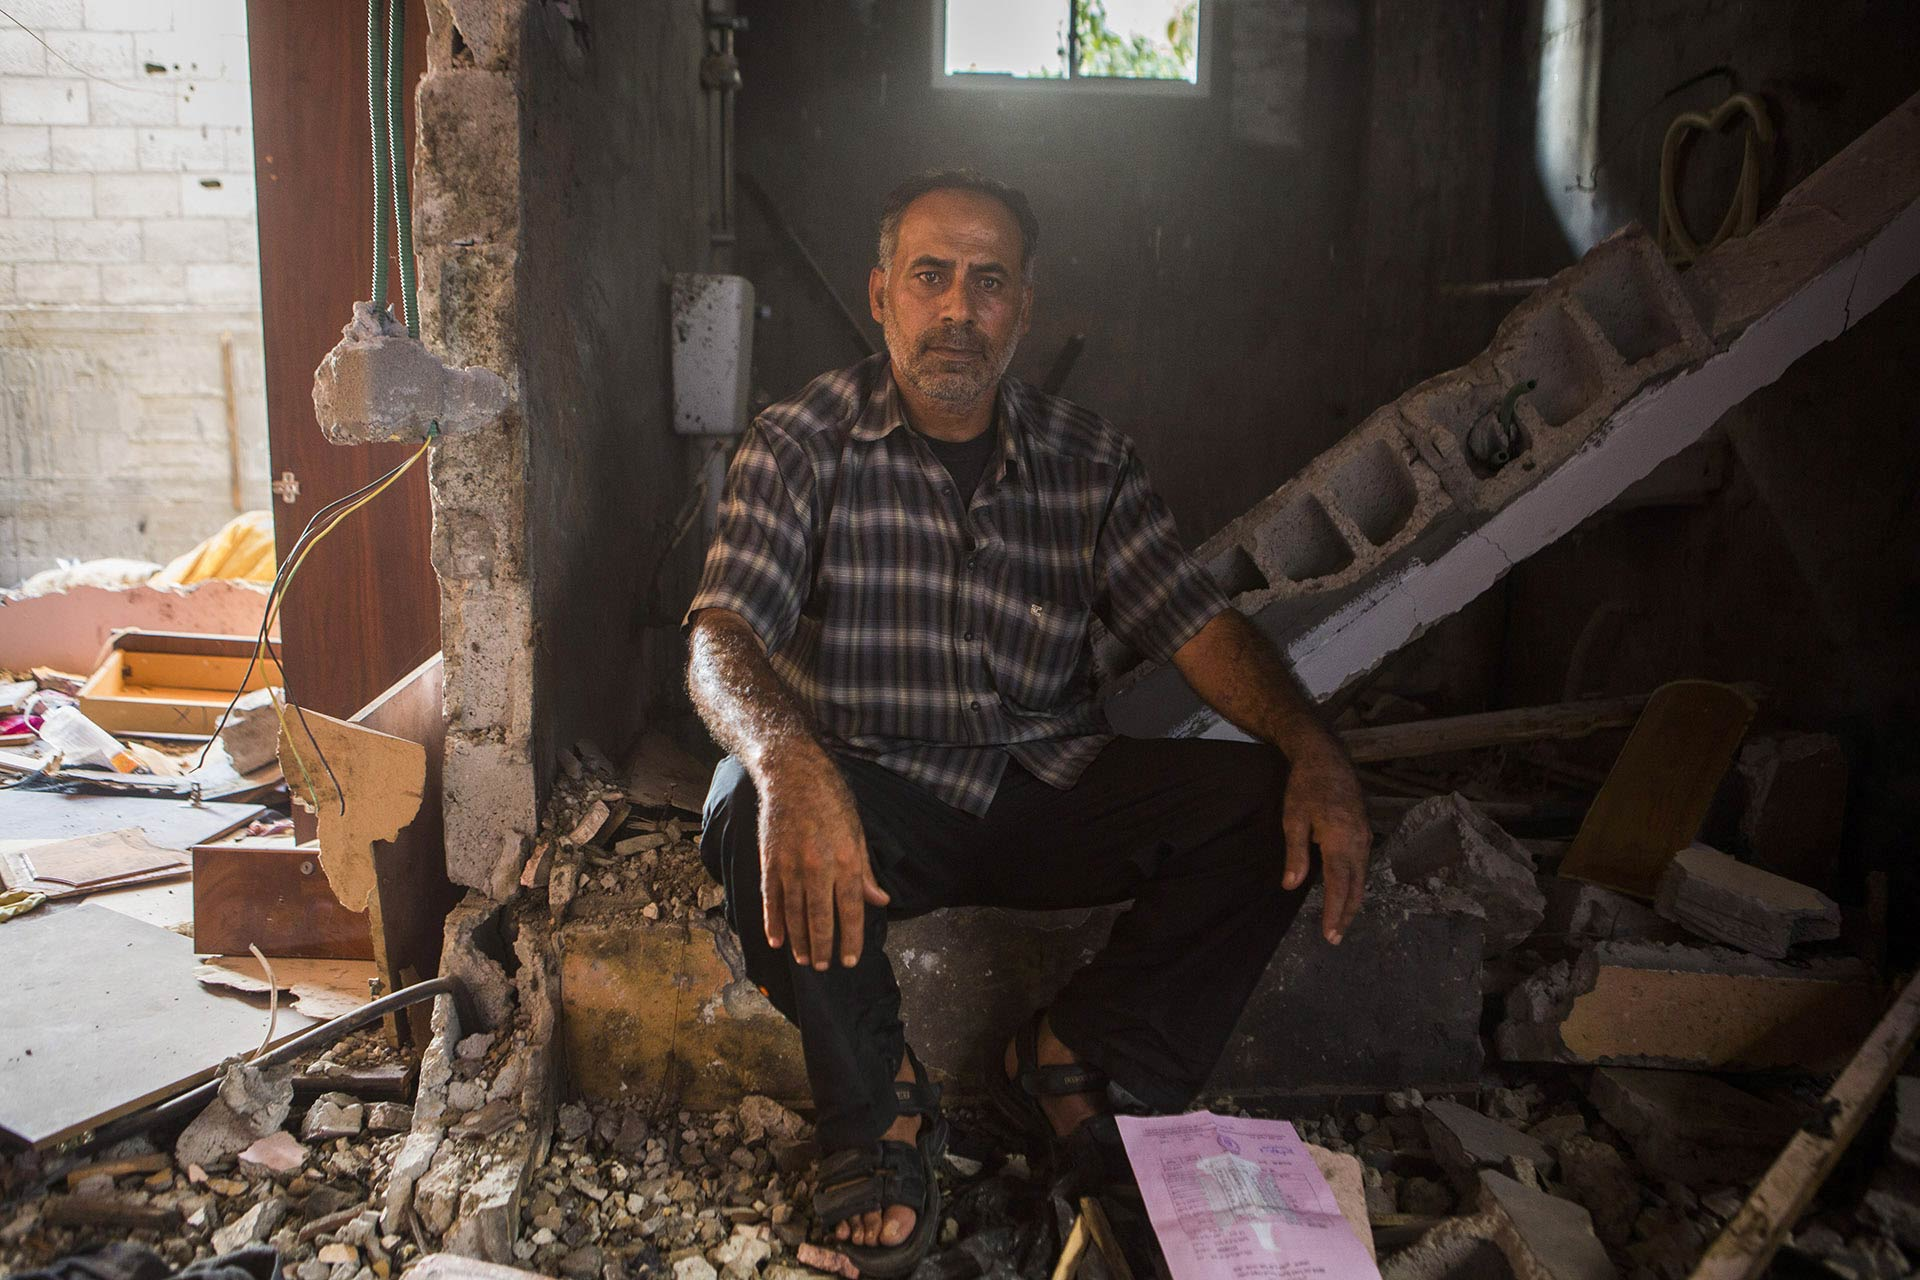 """We are homeless now. I demand justice, I demand that an international court hold Israel accountable, because they murdered our family, with no warning. All I want is to find a prosecutor who will take this case, but no one is looking into it,"" Abdelkarim says."